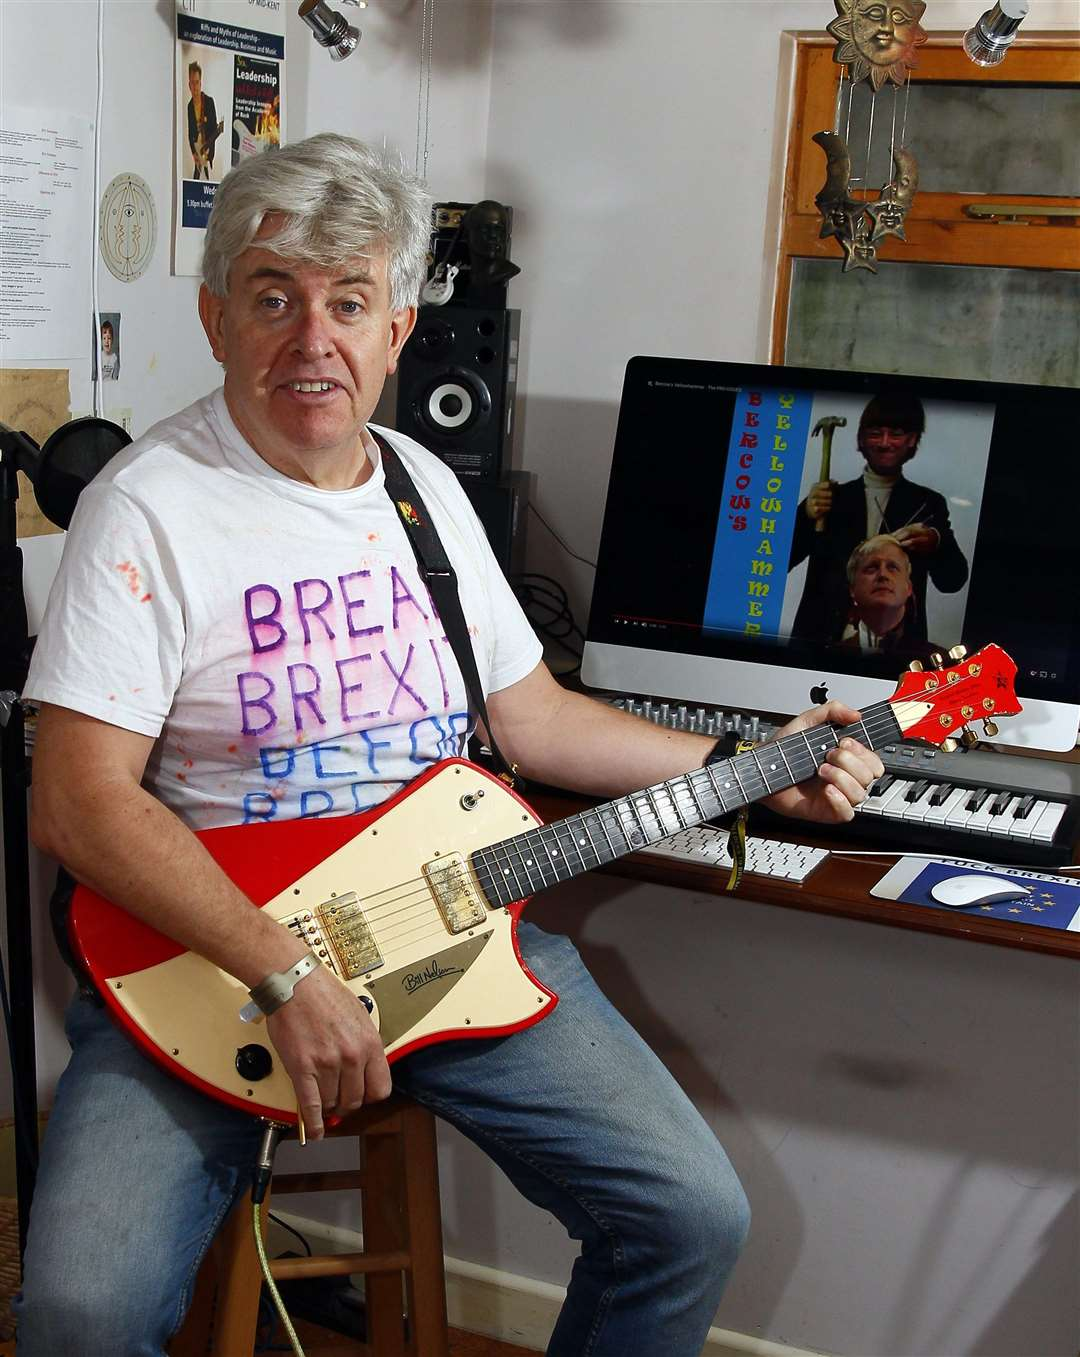 Peter has written an album which has been popular on Amazon, pictured at his home in Gillingham. Picture: Sean Aidan